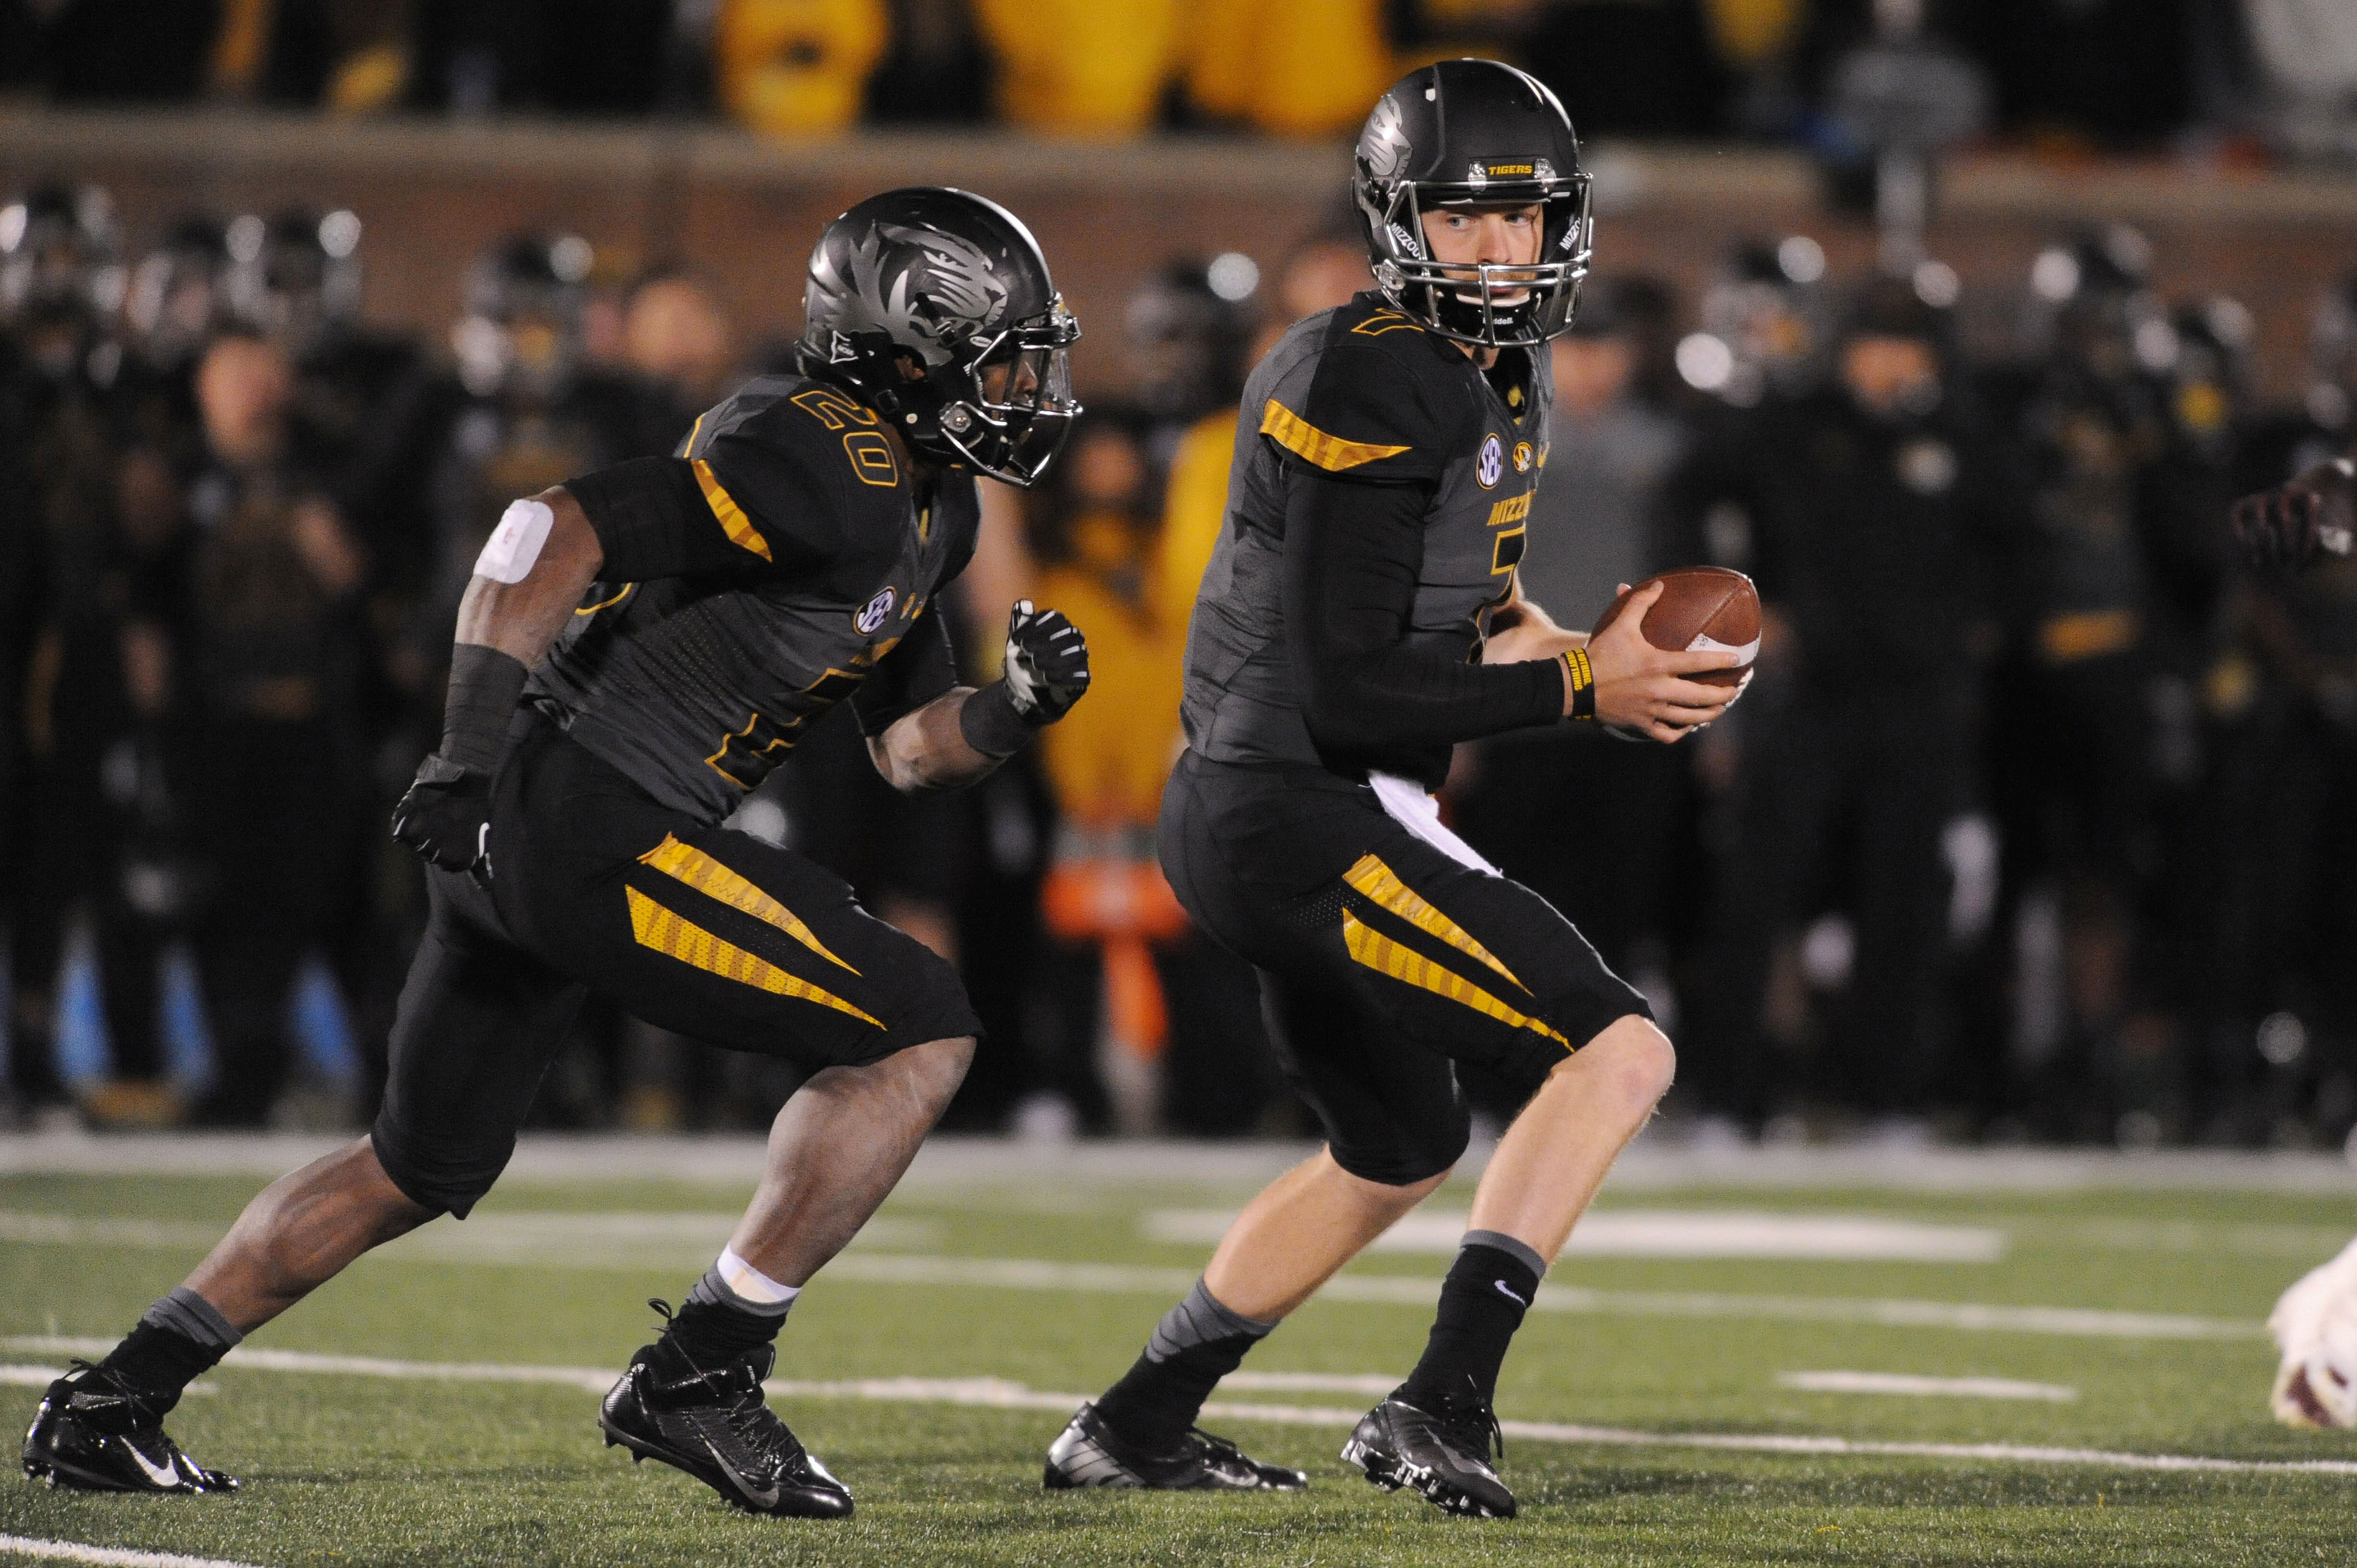 Maty Mauk finished the night 10-of-25 for 249 yards, one TD and one INT. (USA Today)